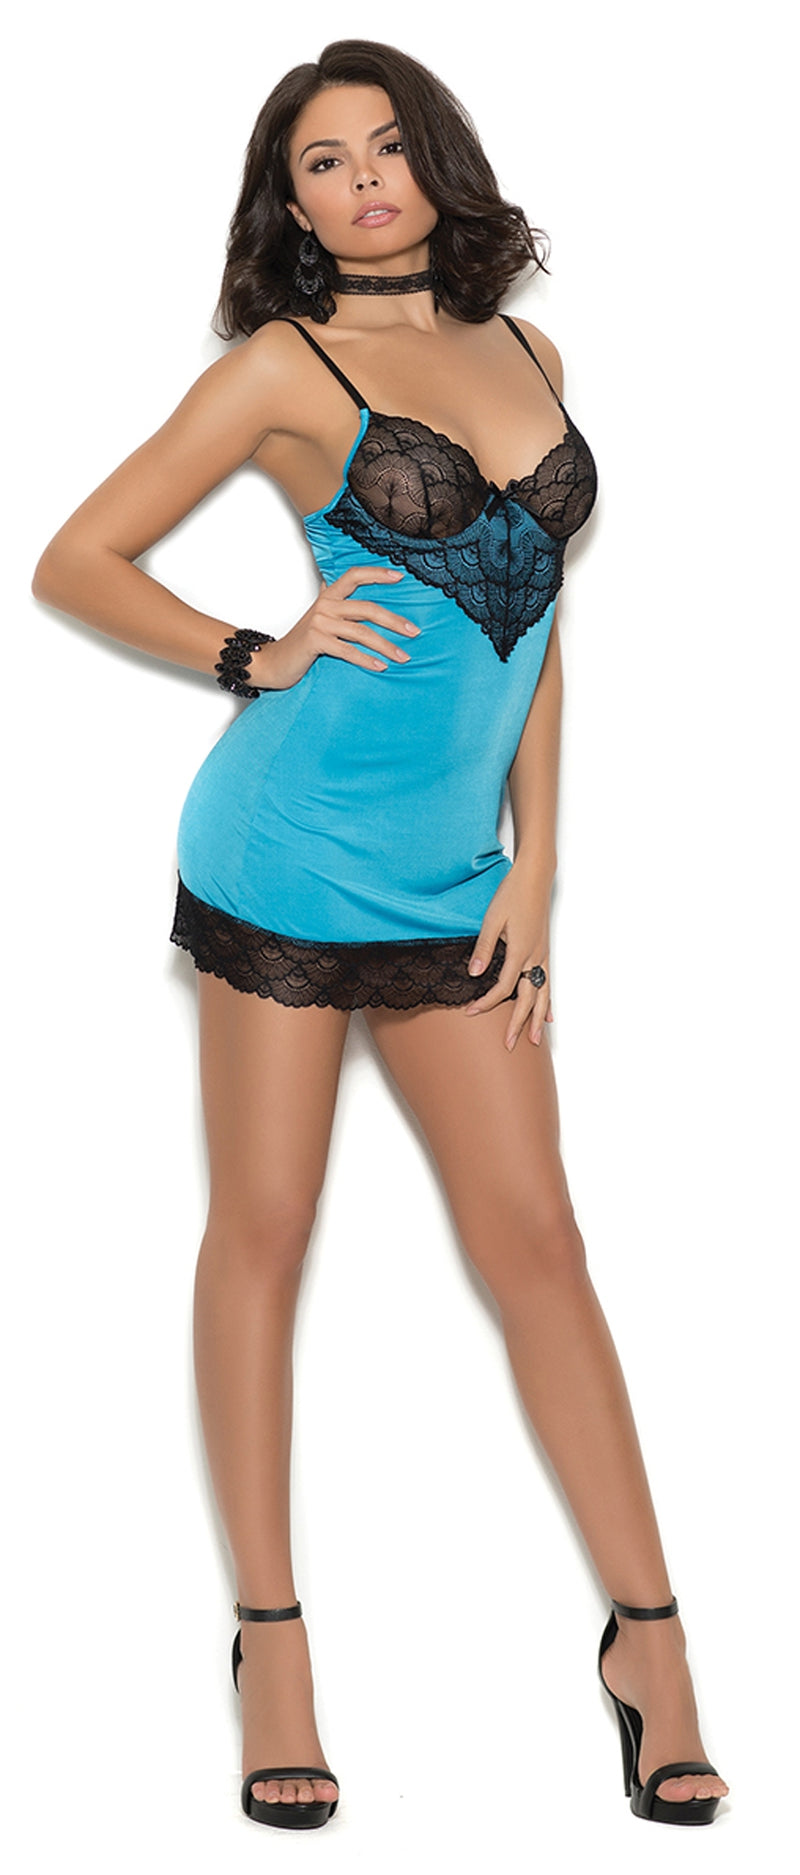 EM-4355 Satin chemise with lace underwire cups front